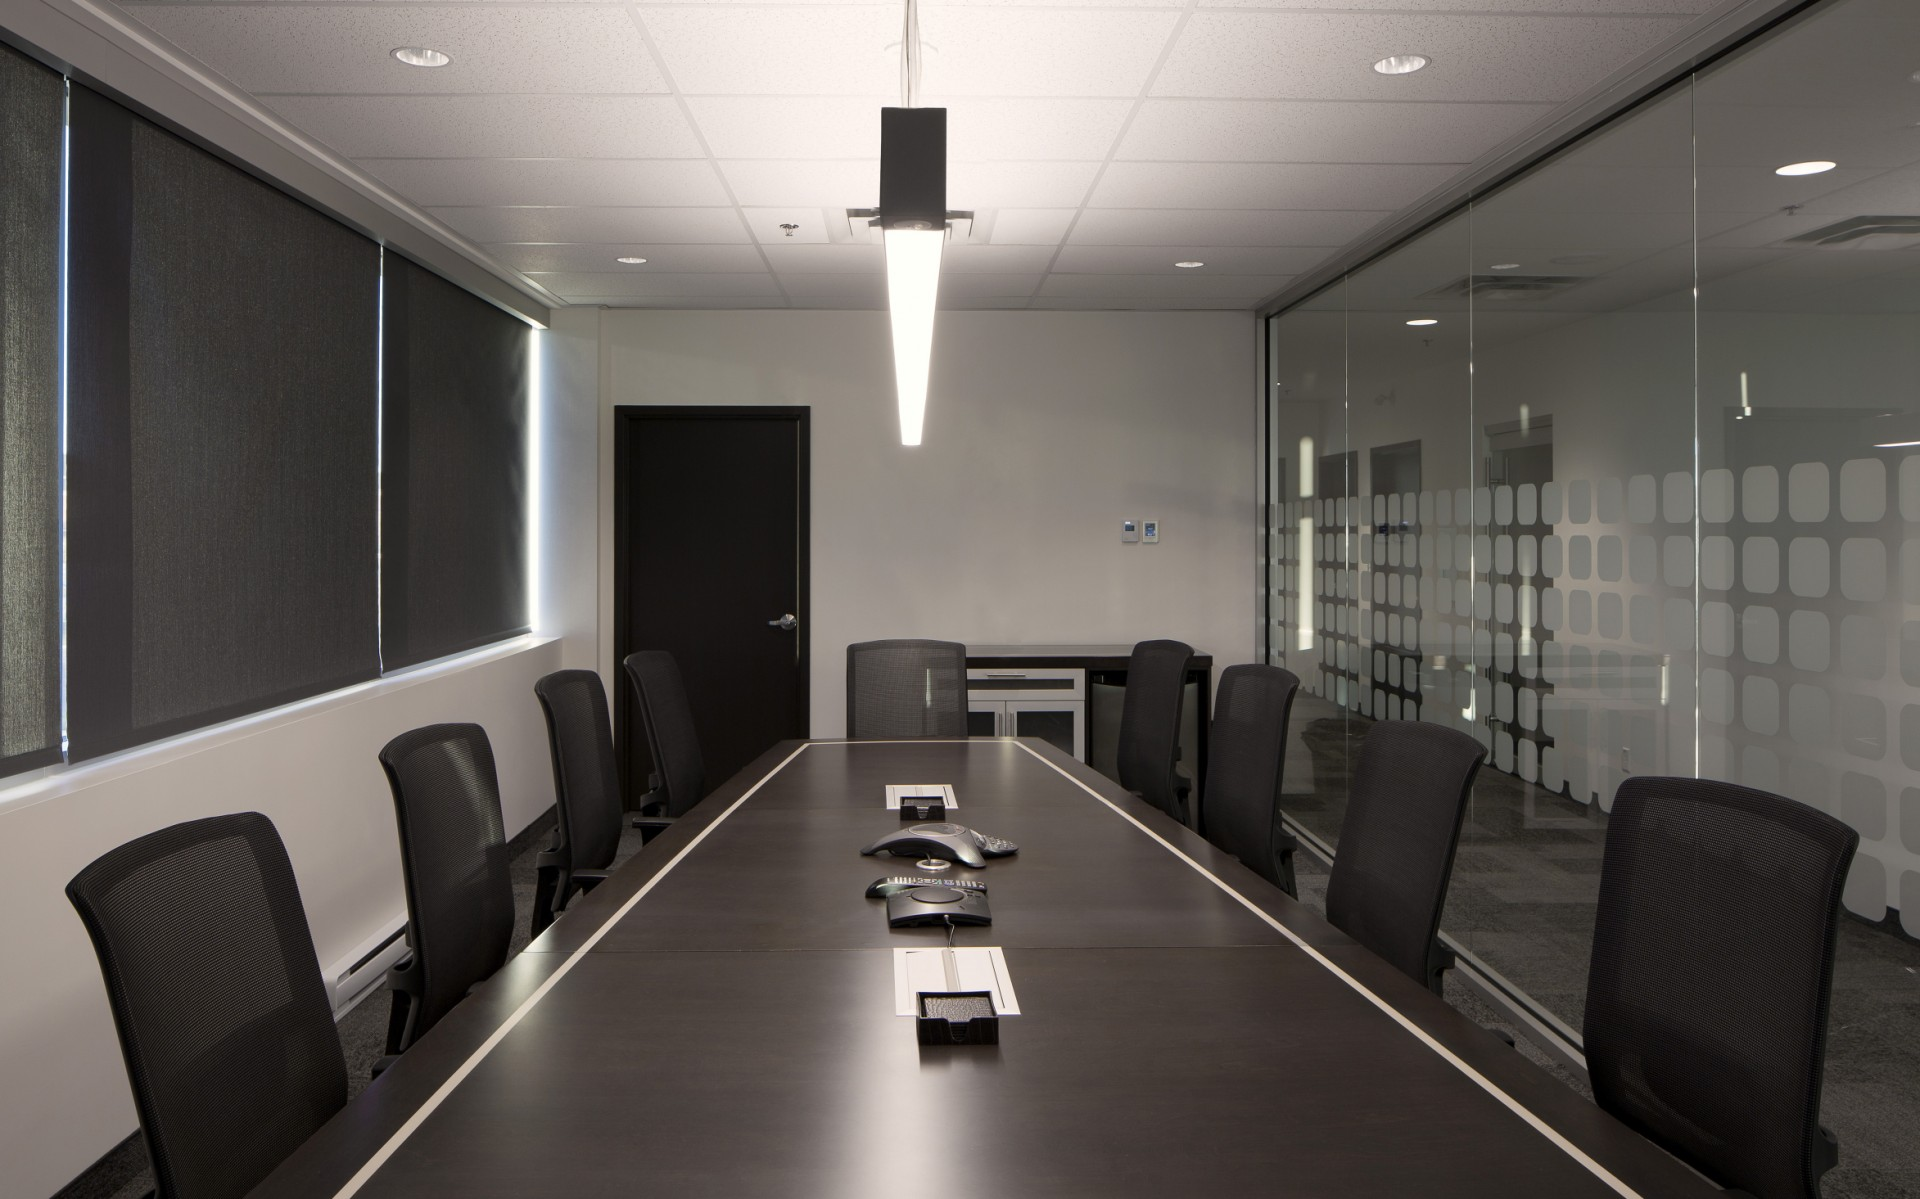 The luminaires can be dimmed to provide the office with a range of lighting options.